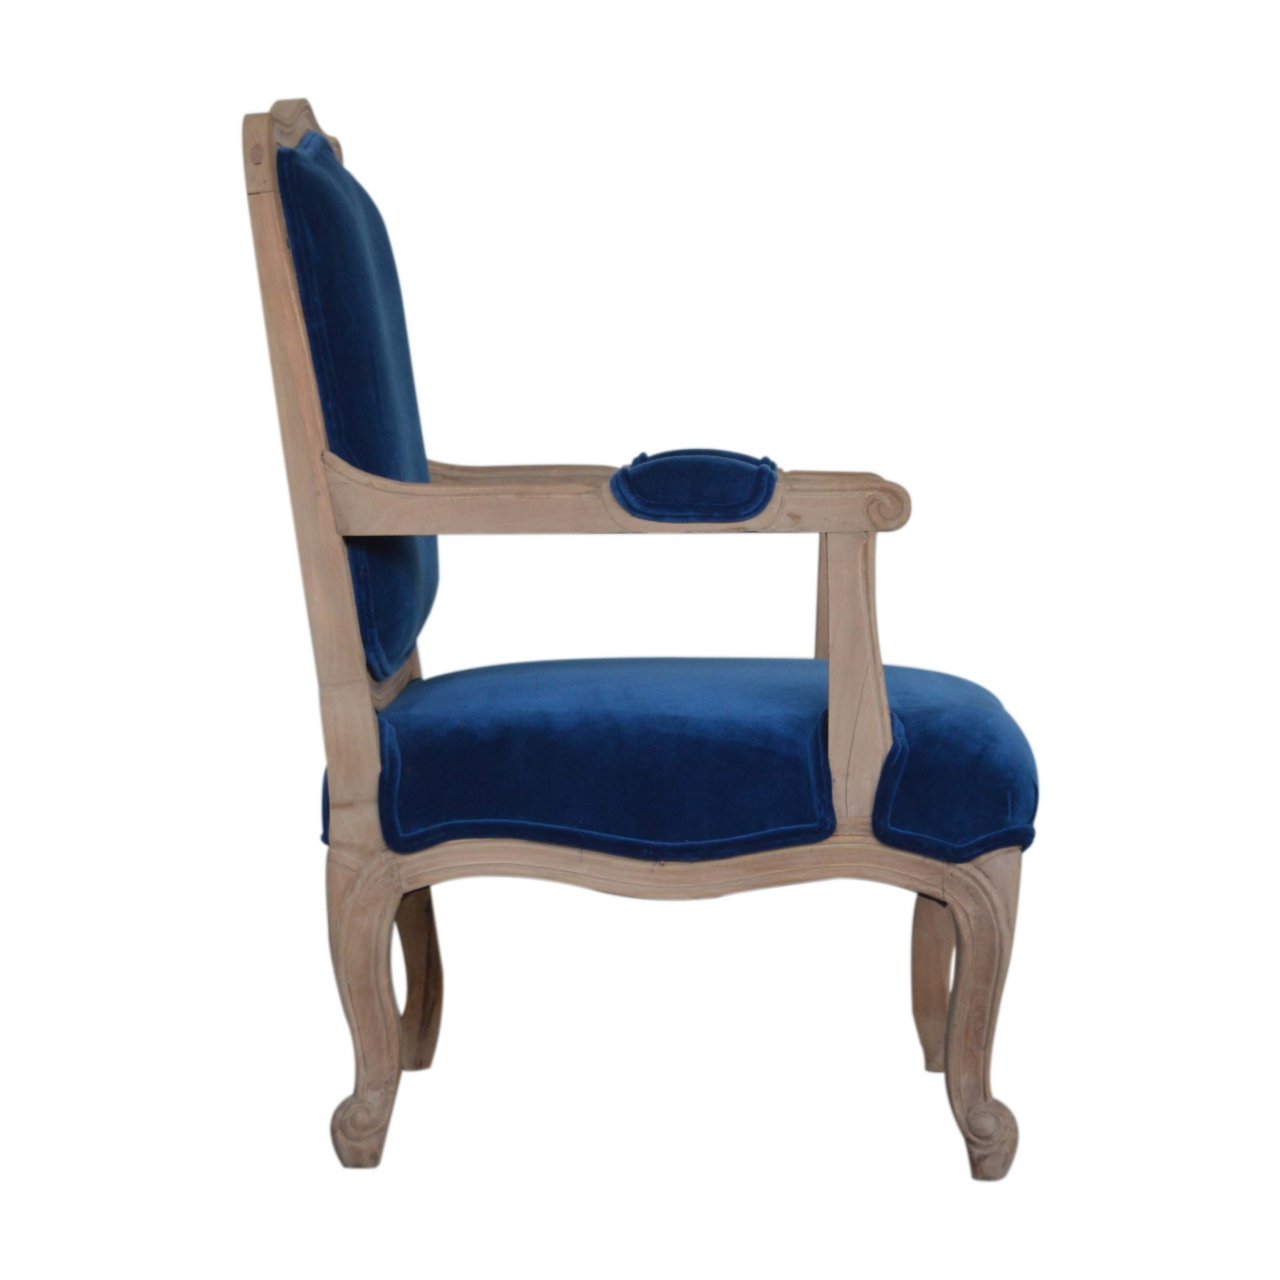 Royal Blue Velvet French Style Chair – Artisan Furniture In Most Recently Released Artisan Blue Sofas (View 6 of 15)